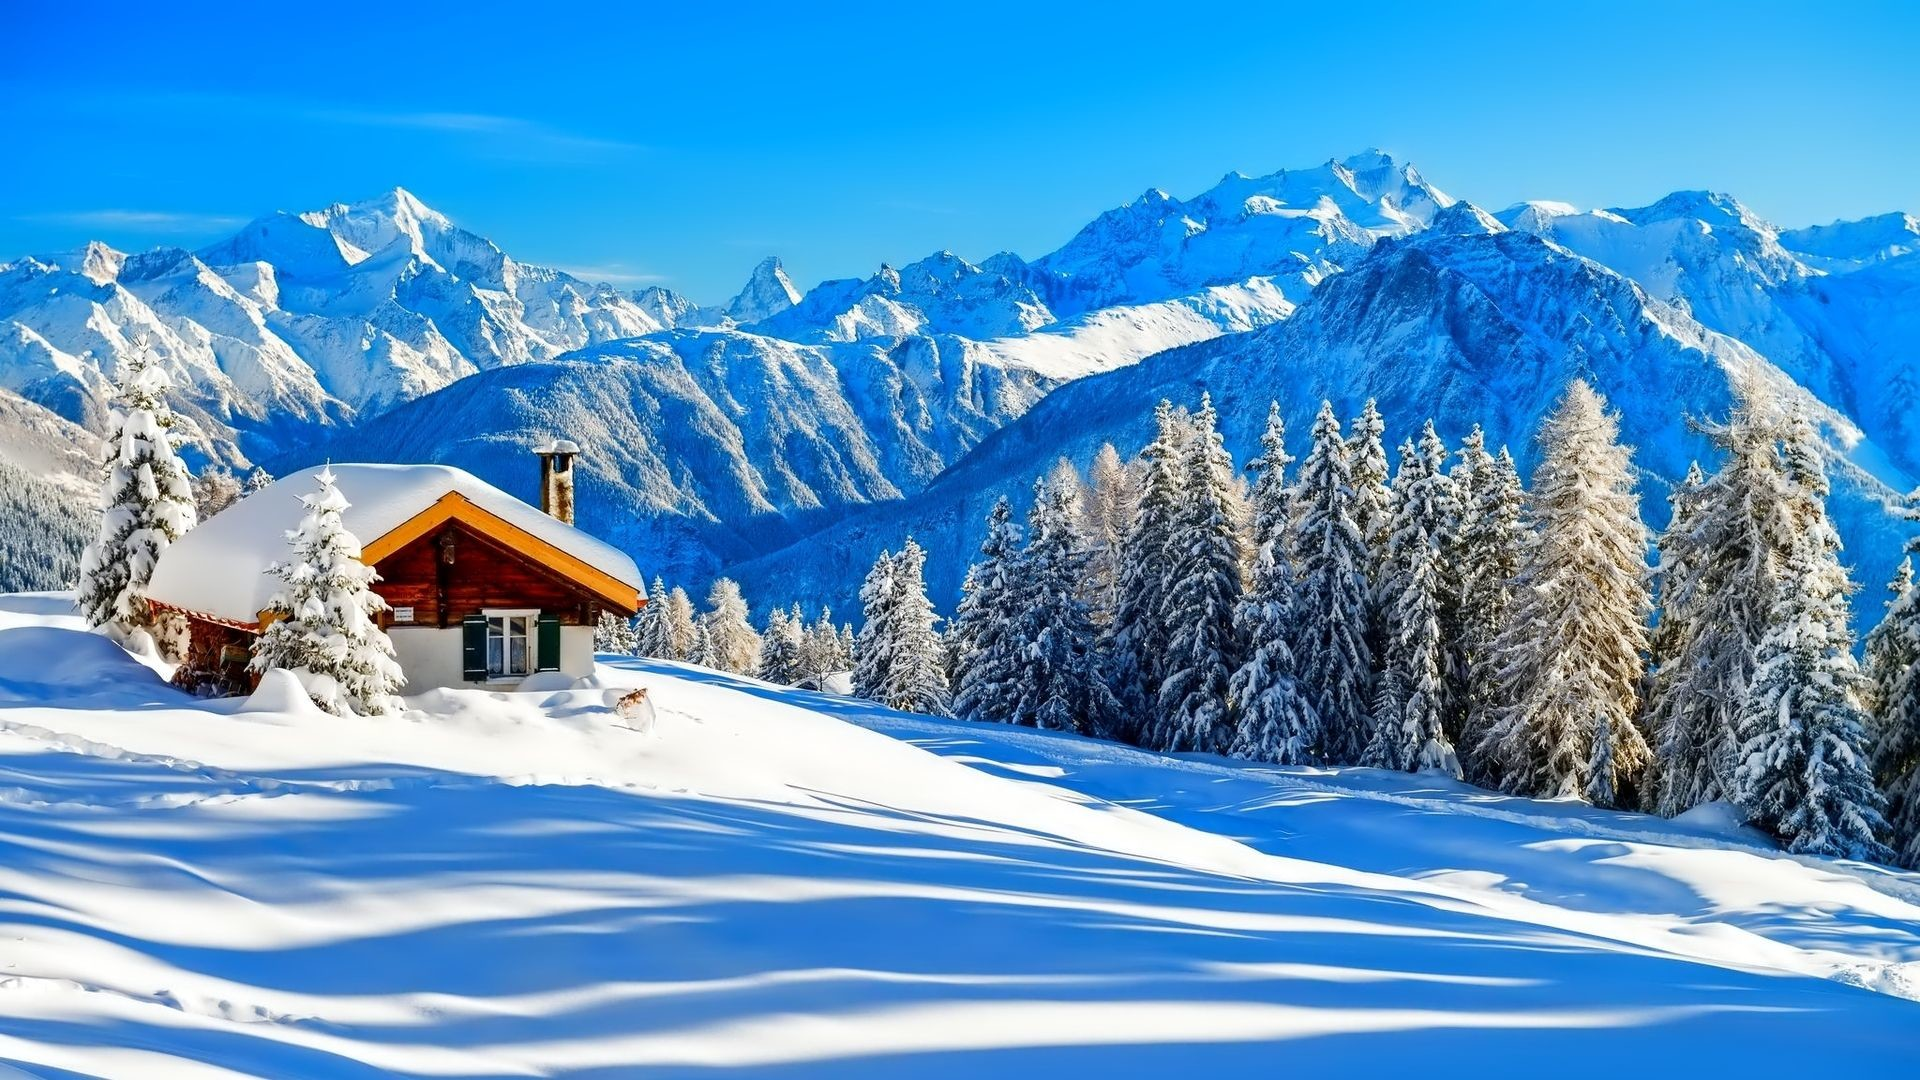 1920x1080 Cabin Tag wallpapers Page 5: Beautiful Mountain Cabin Winter .